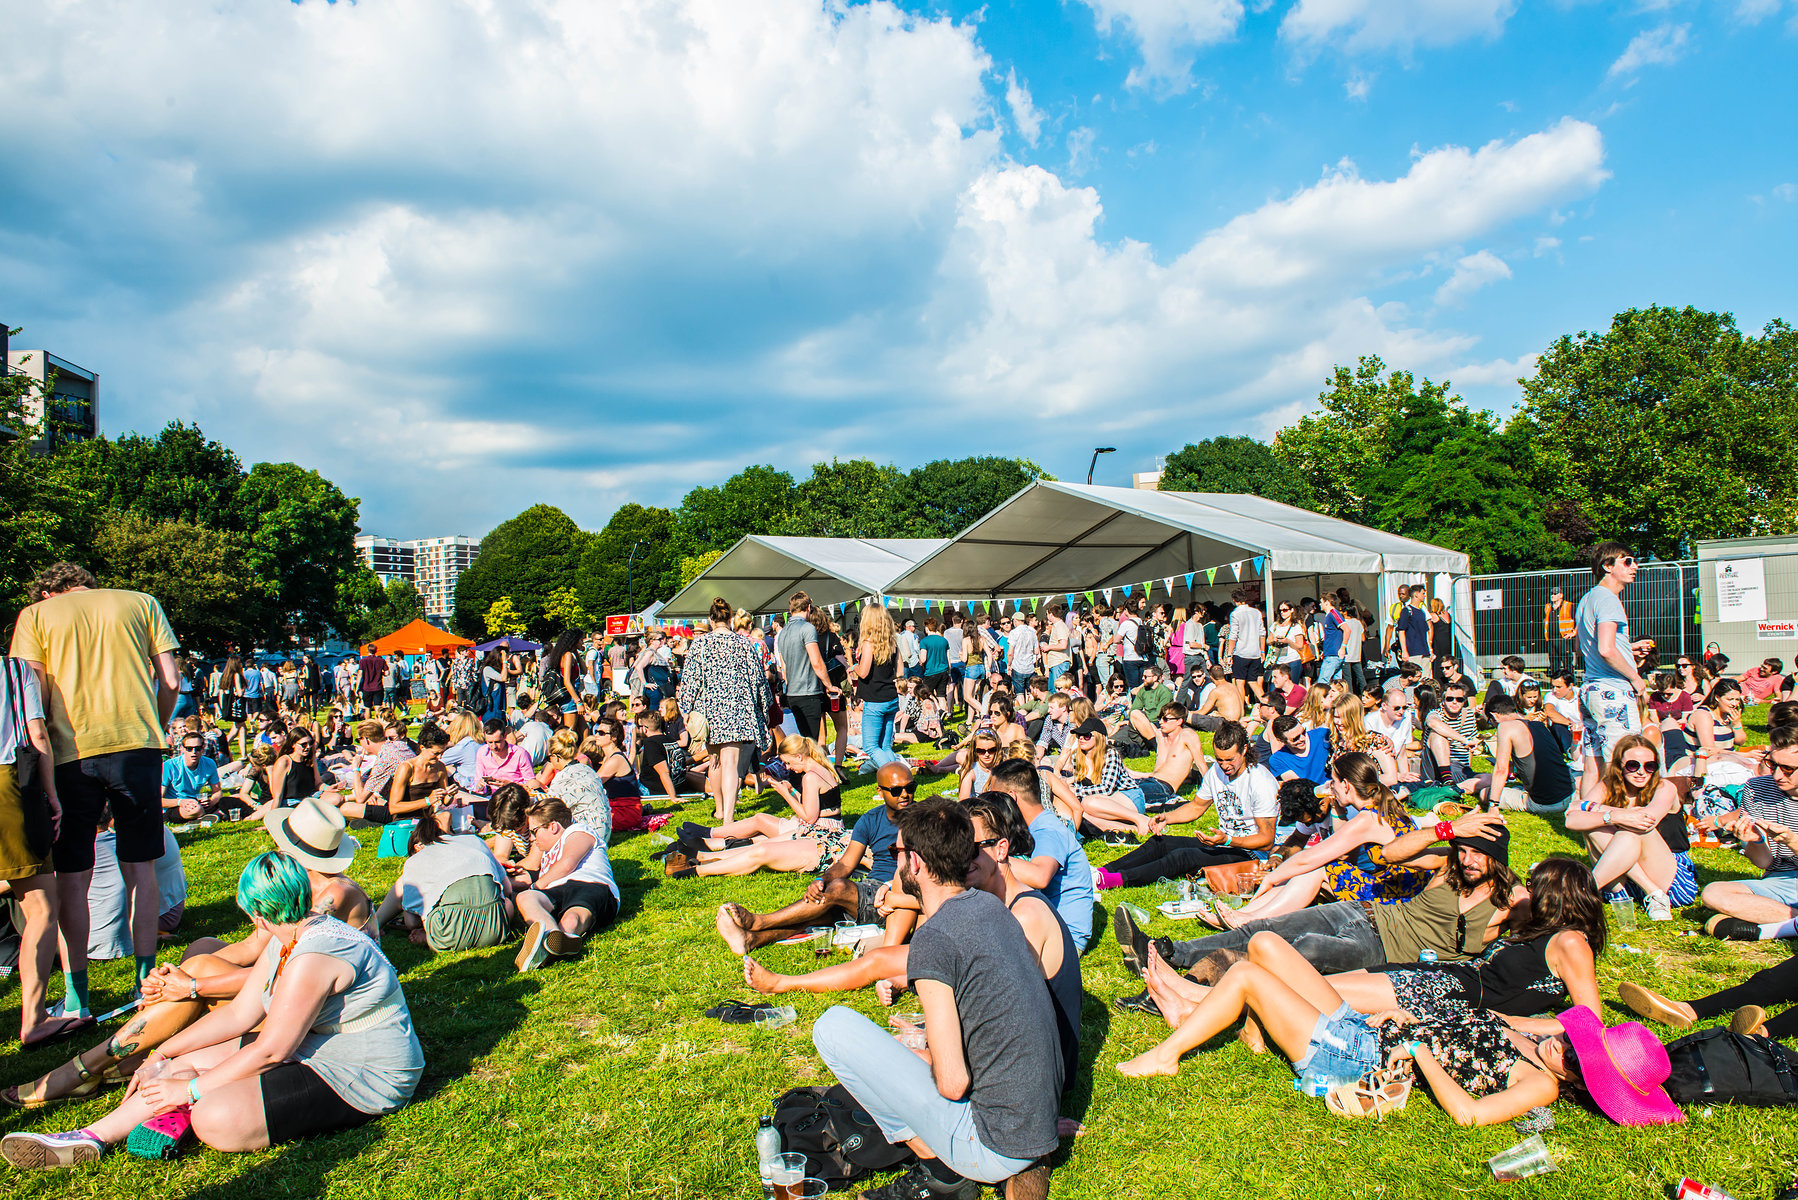 The Old Blue Last Festival 2016 at Shoreditch Park